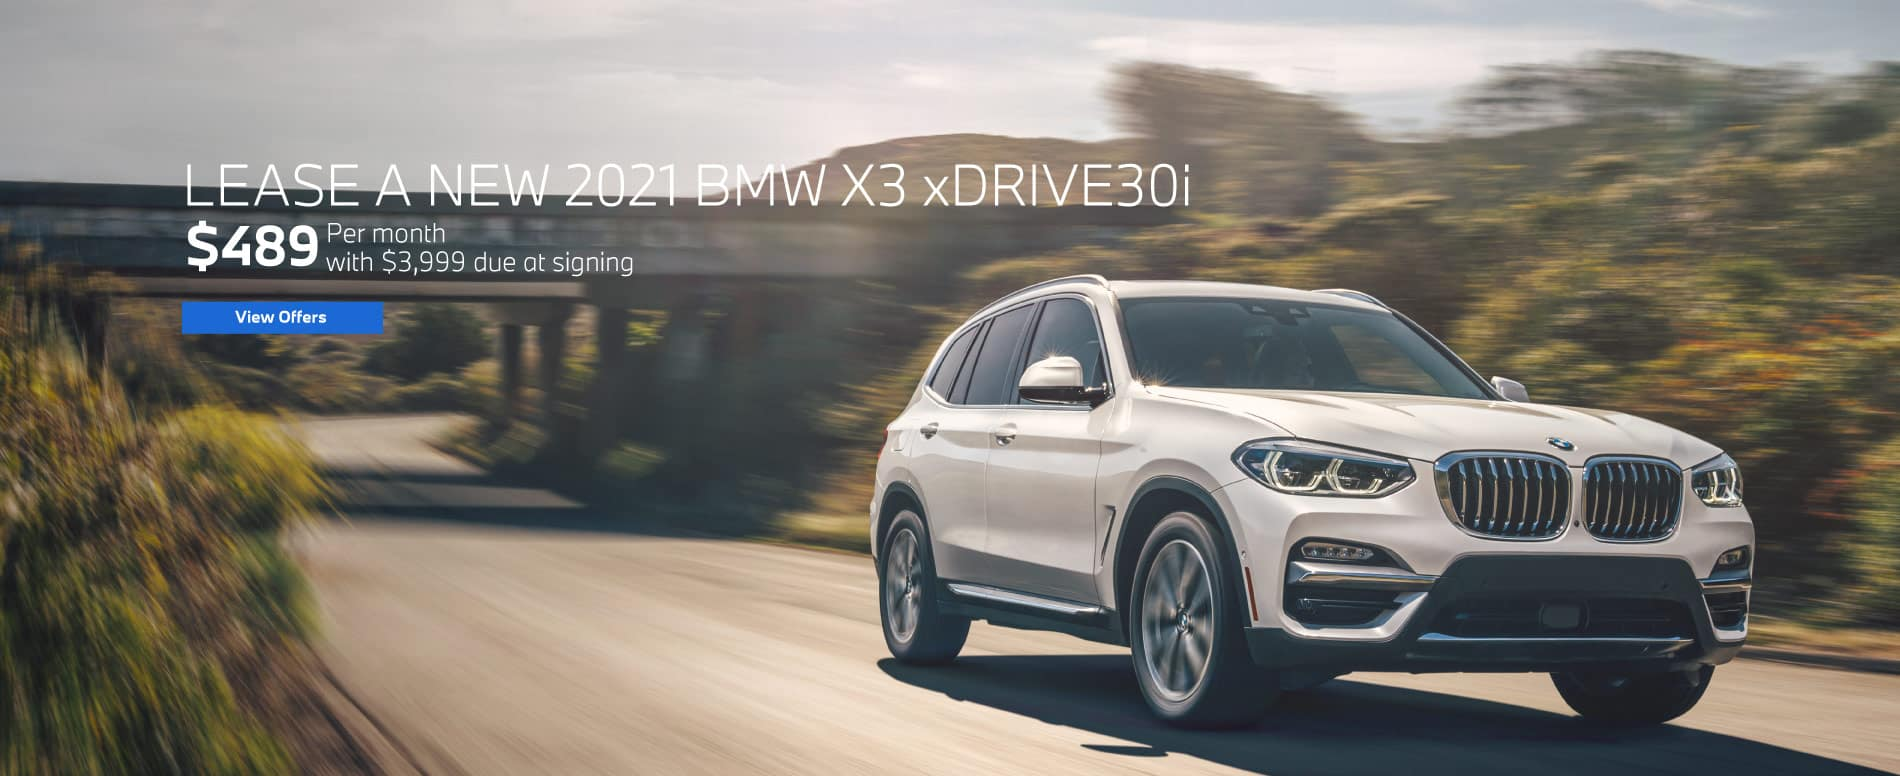 Lease a 2021 X3 xDrive30i for $489 a month   View Inventory